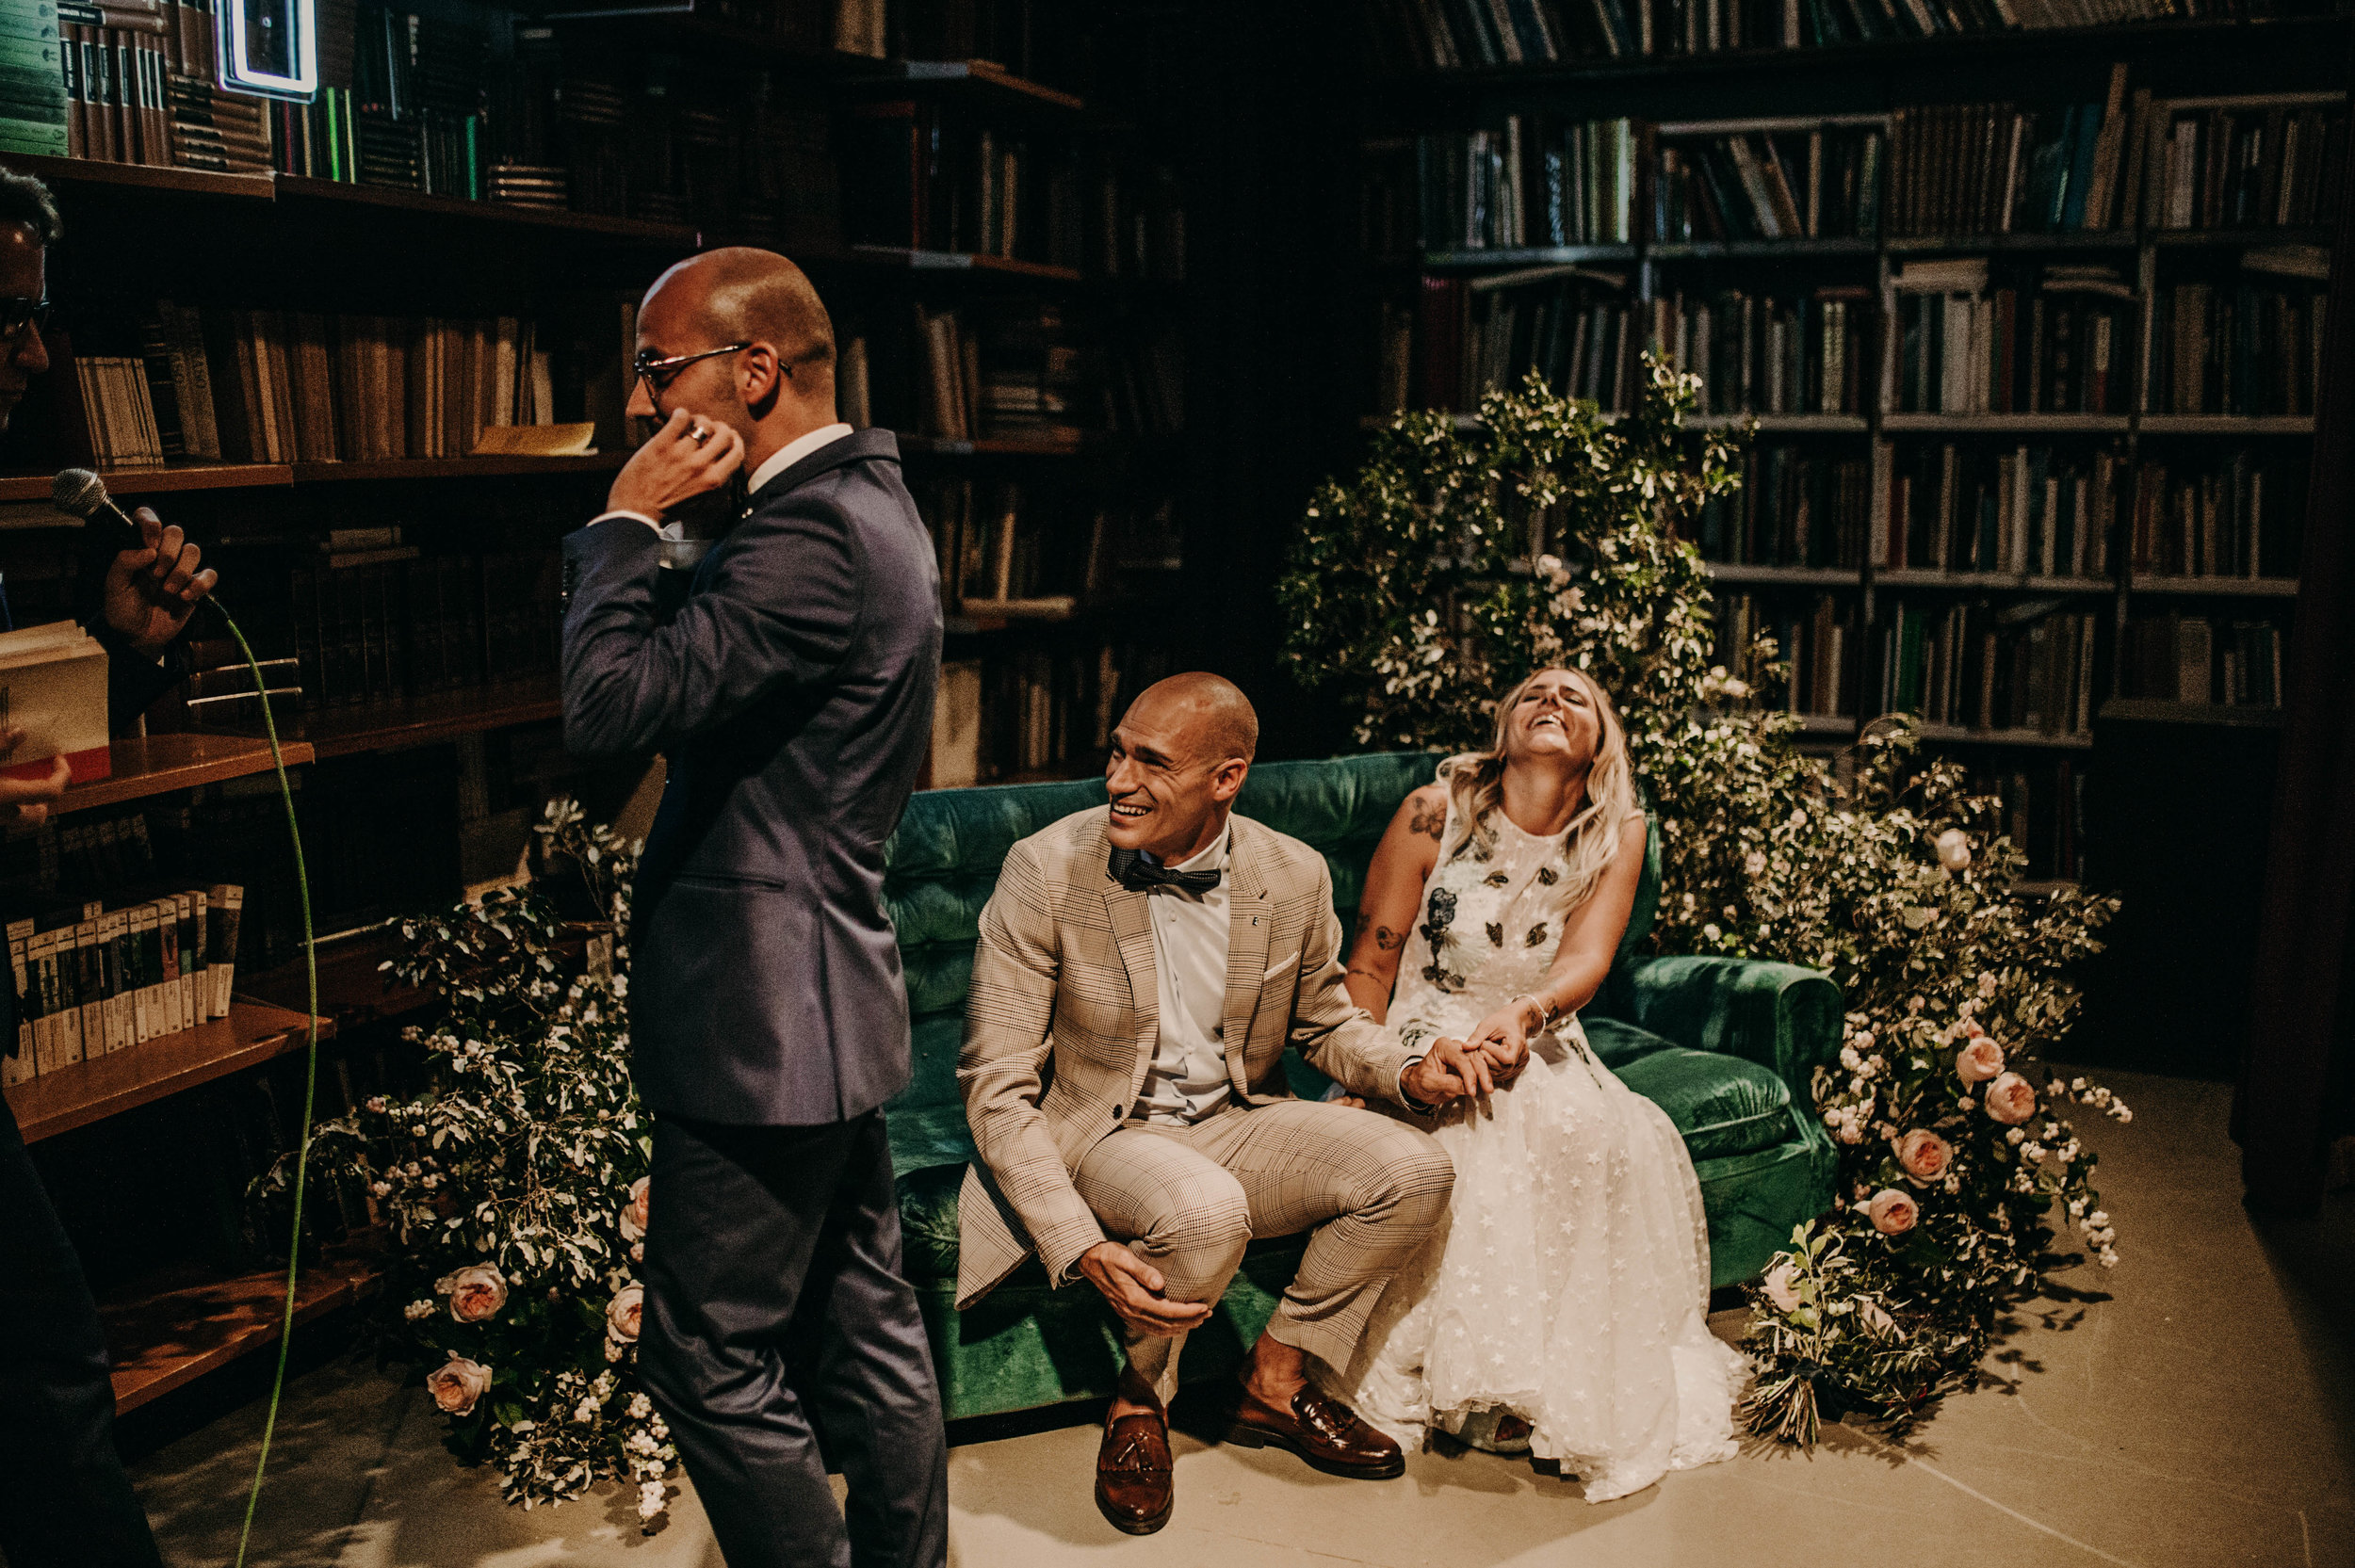 thenortherngirlphotography_bodasindustriales_bodasdiferentes_weddingphotographer_spanishphotographer_spanisgweddingphotographer_happyendings_mercantic_elsiglomercantic_antichrist_love_neon_weddingtattoo_CYNTHIAMANOLO-343.jpg